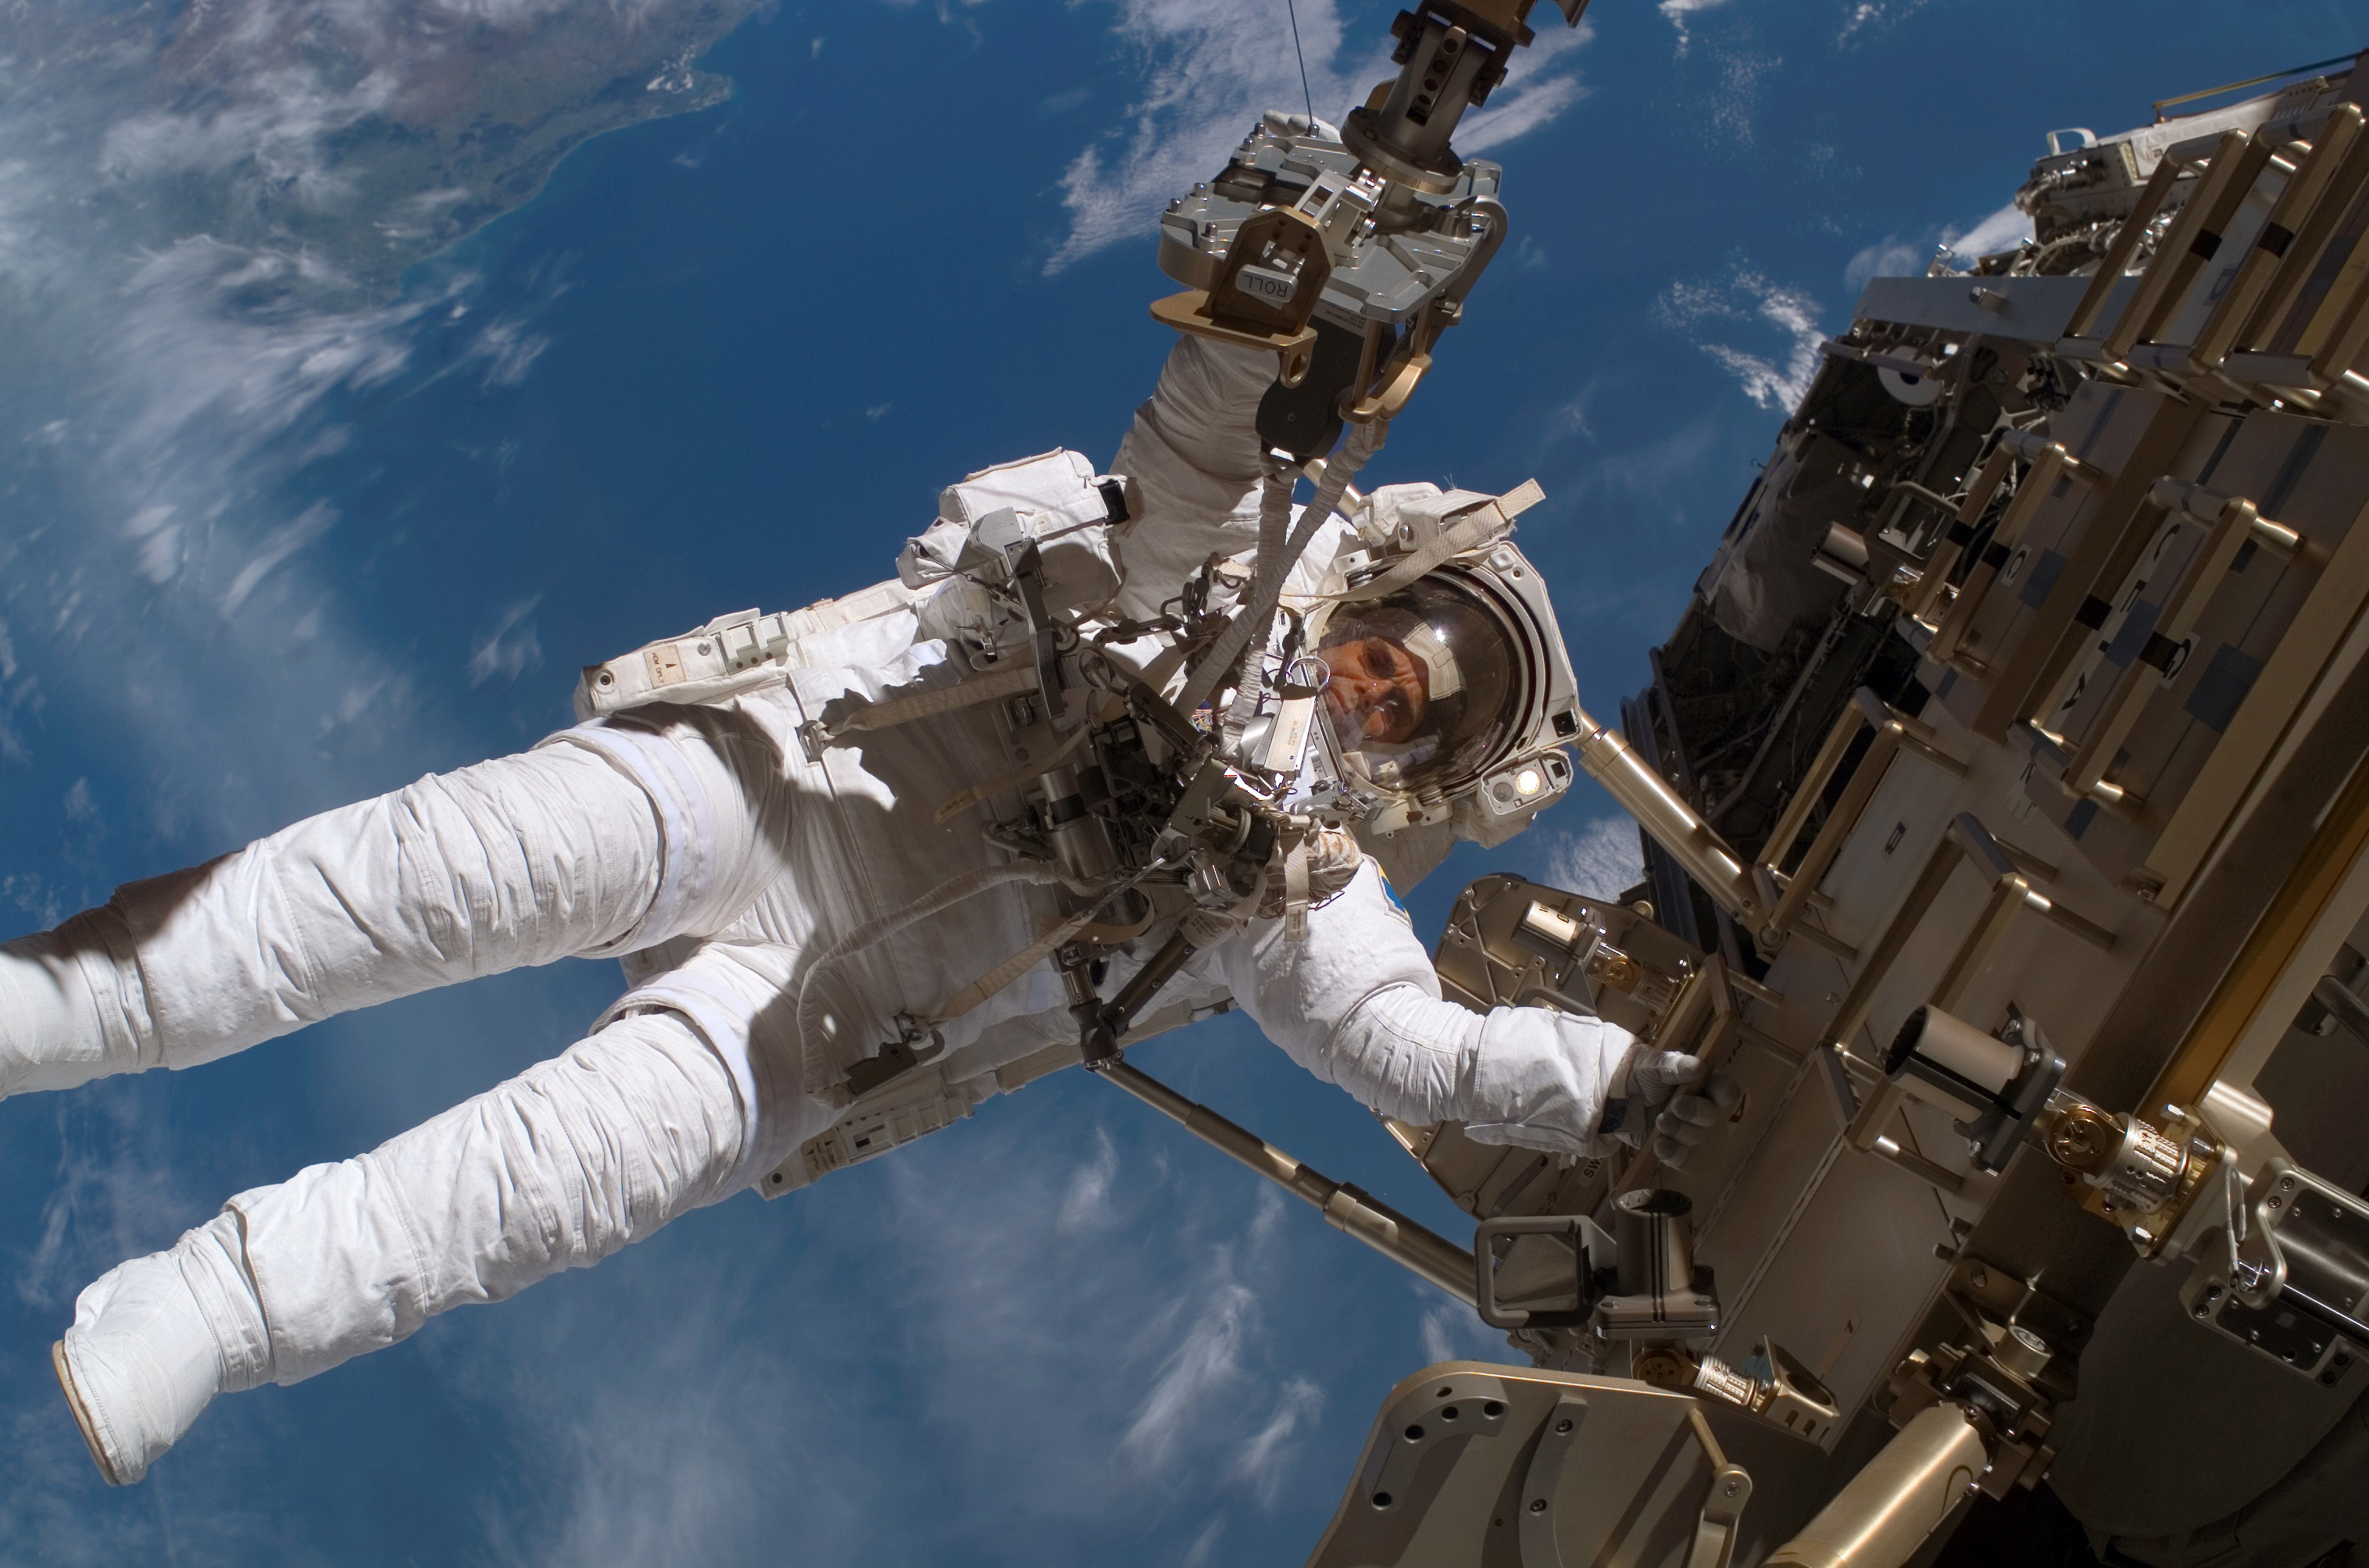 nasa space walk live - photo #35